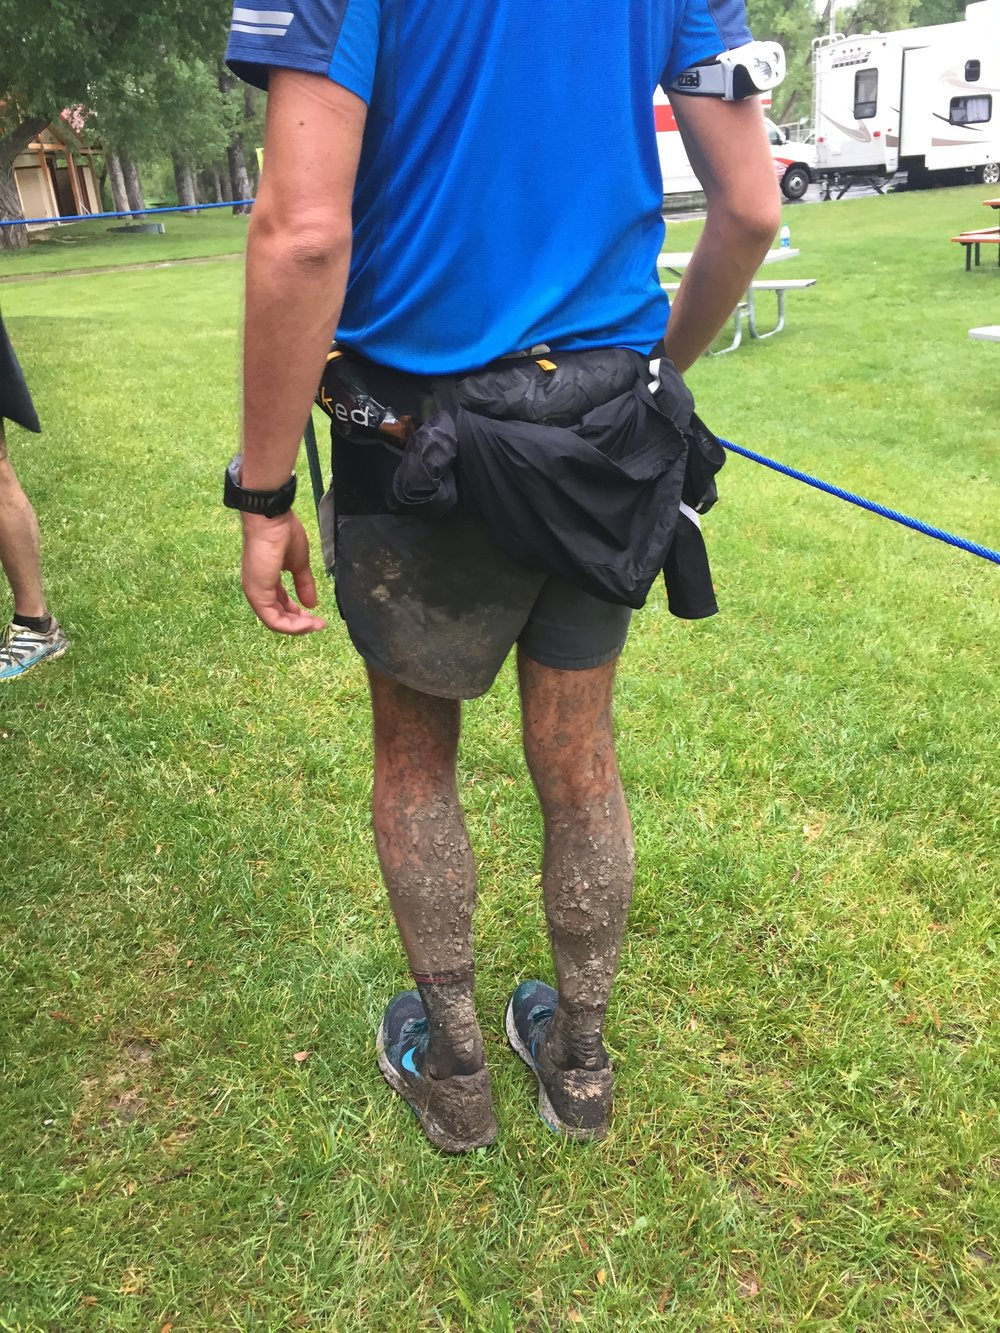 Mud bath for the legs